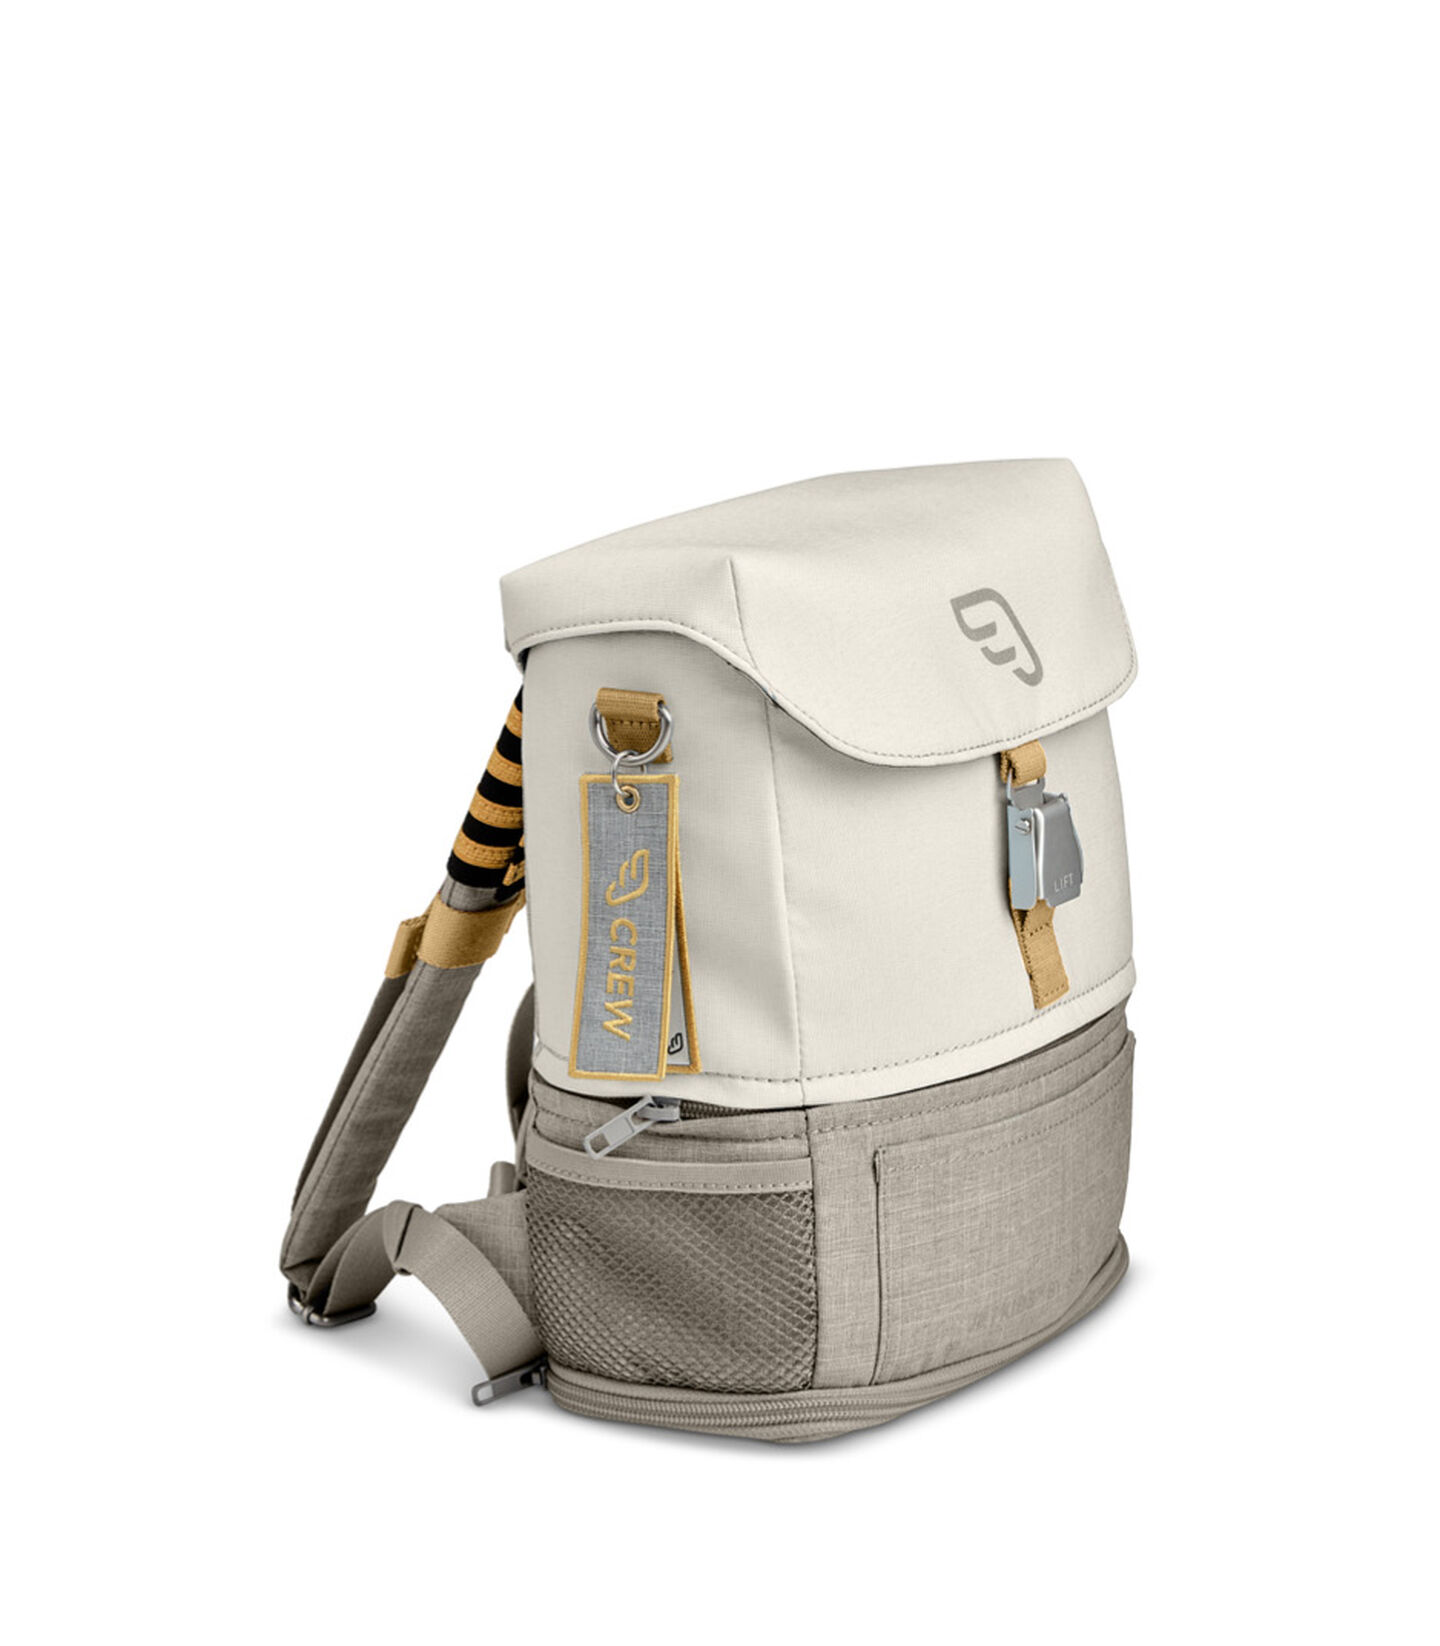 JetKids by Stokke® Crew Backpack ホワイト, ホワイト, mainview view 2